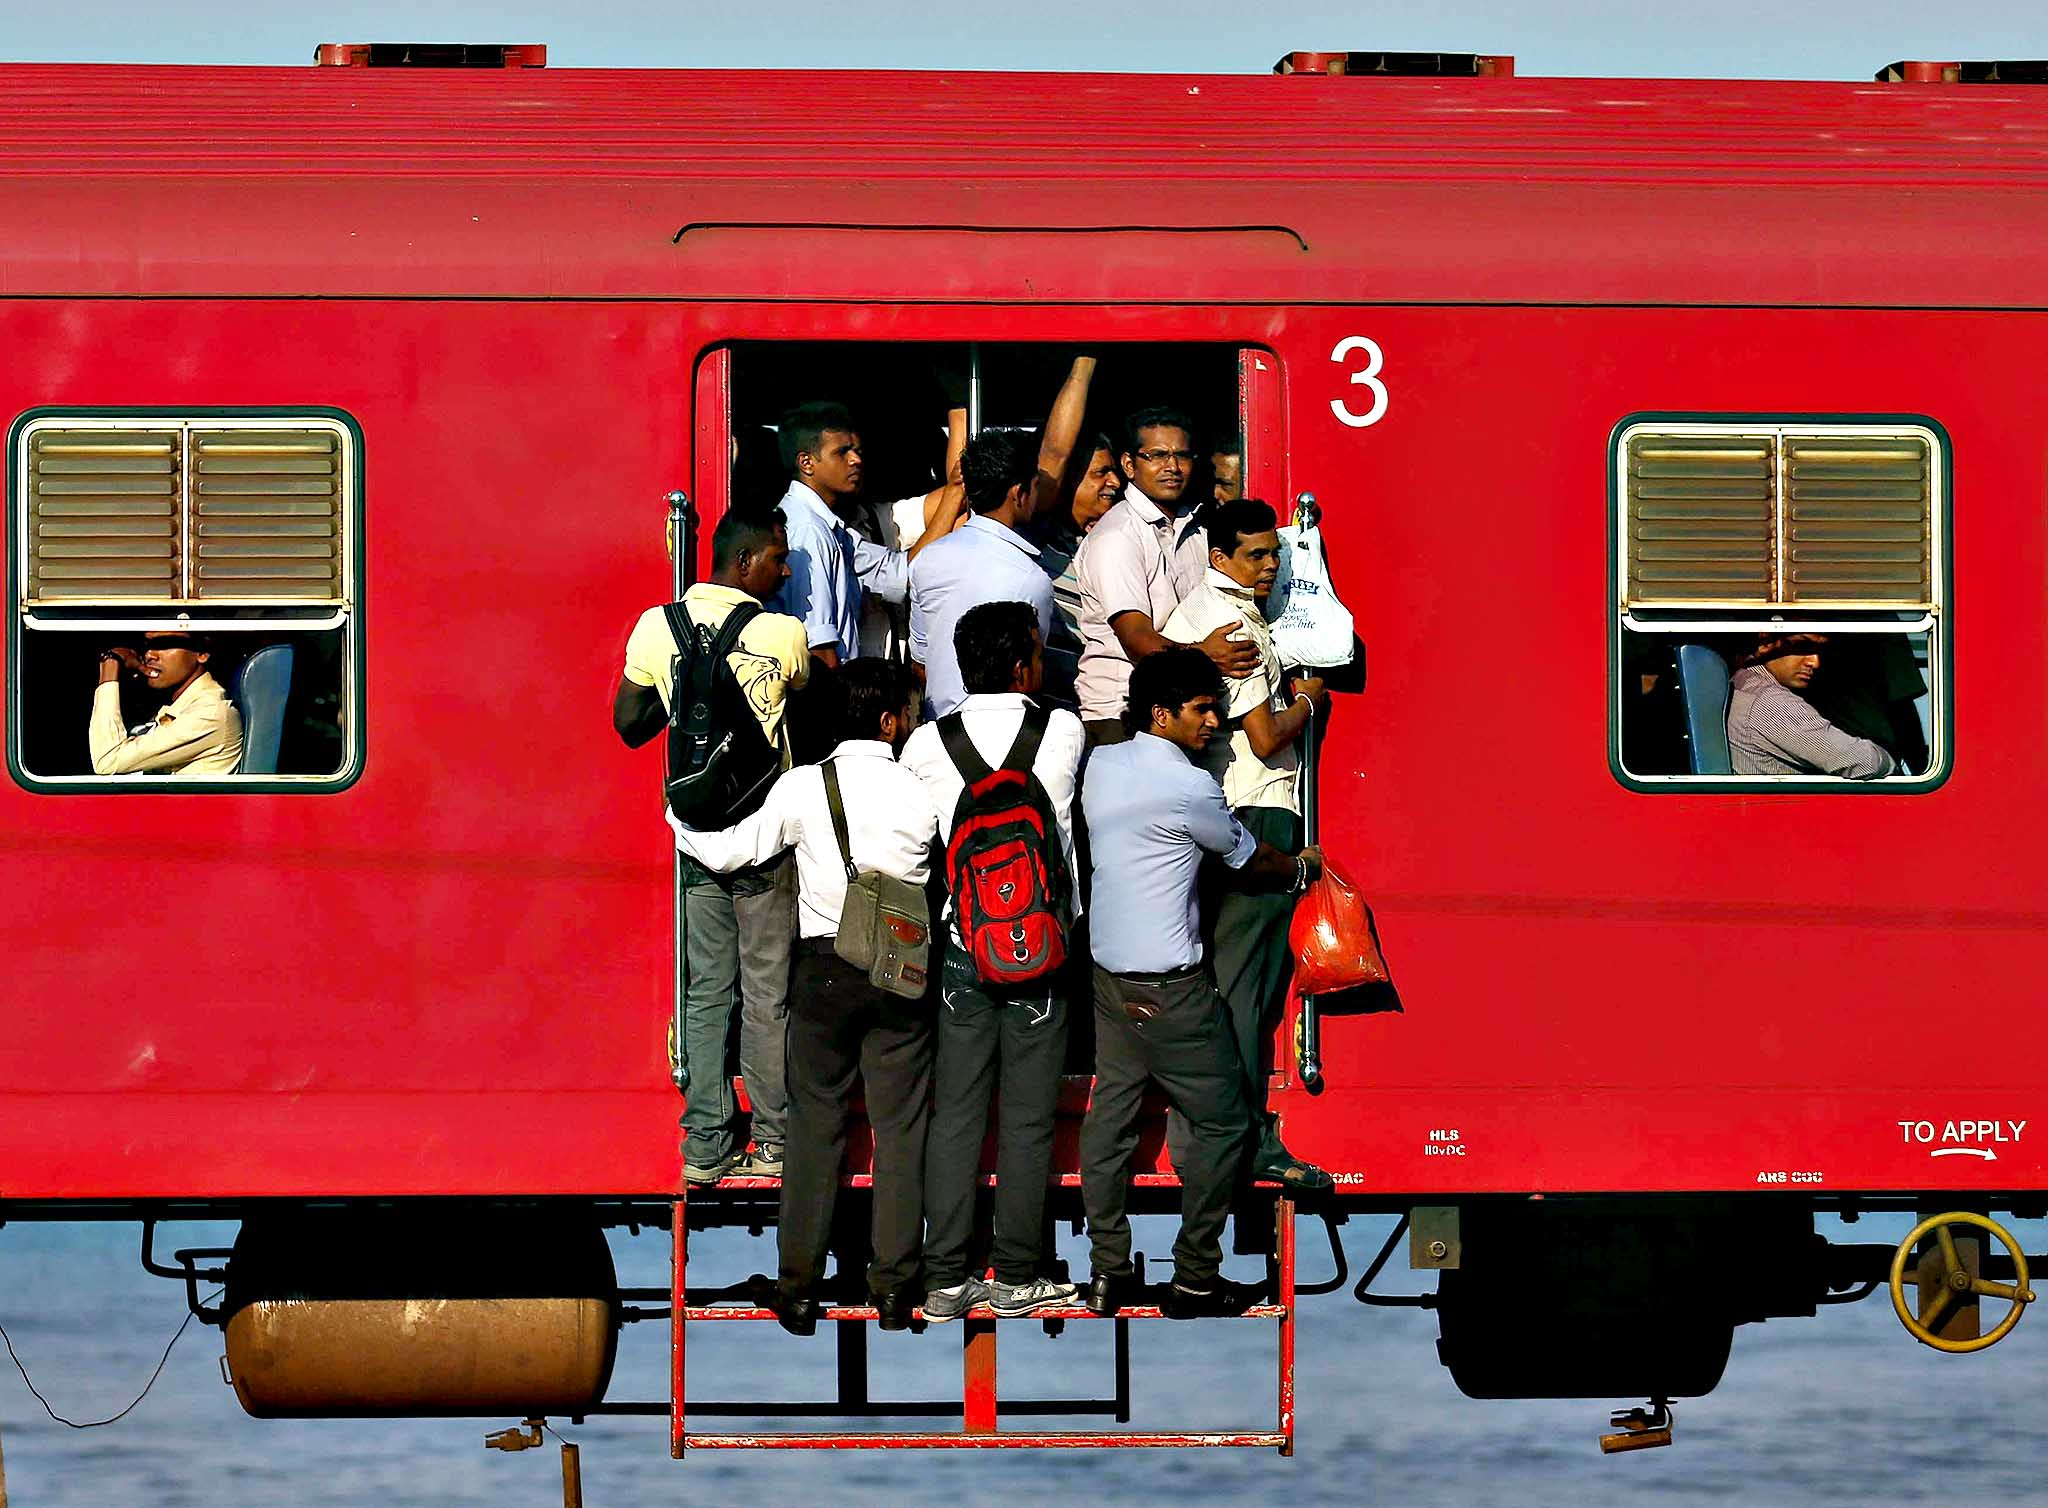 People hang onto a crowded local passenger train as they travel to Colombo.